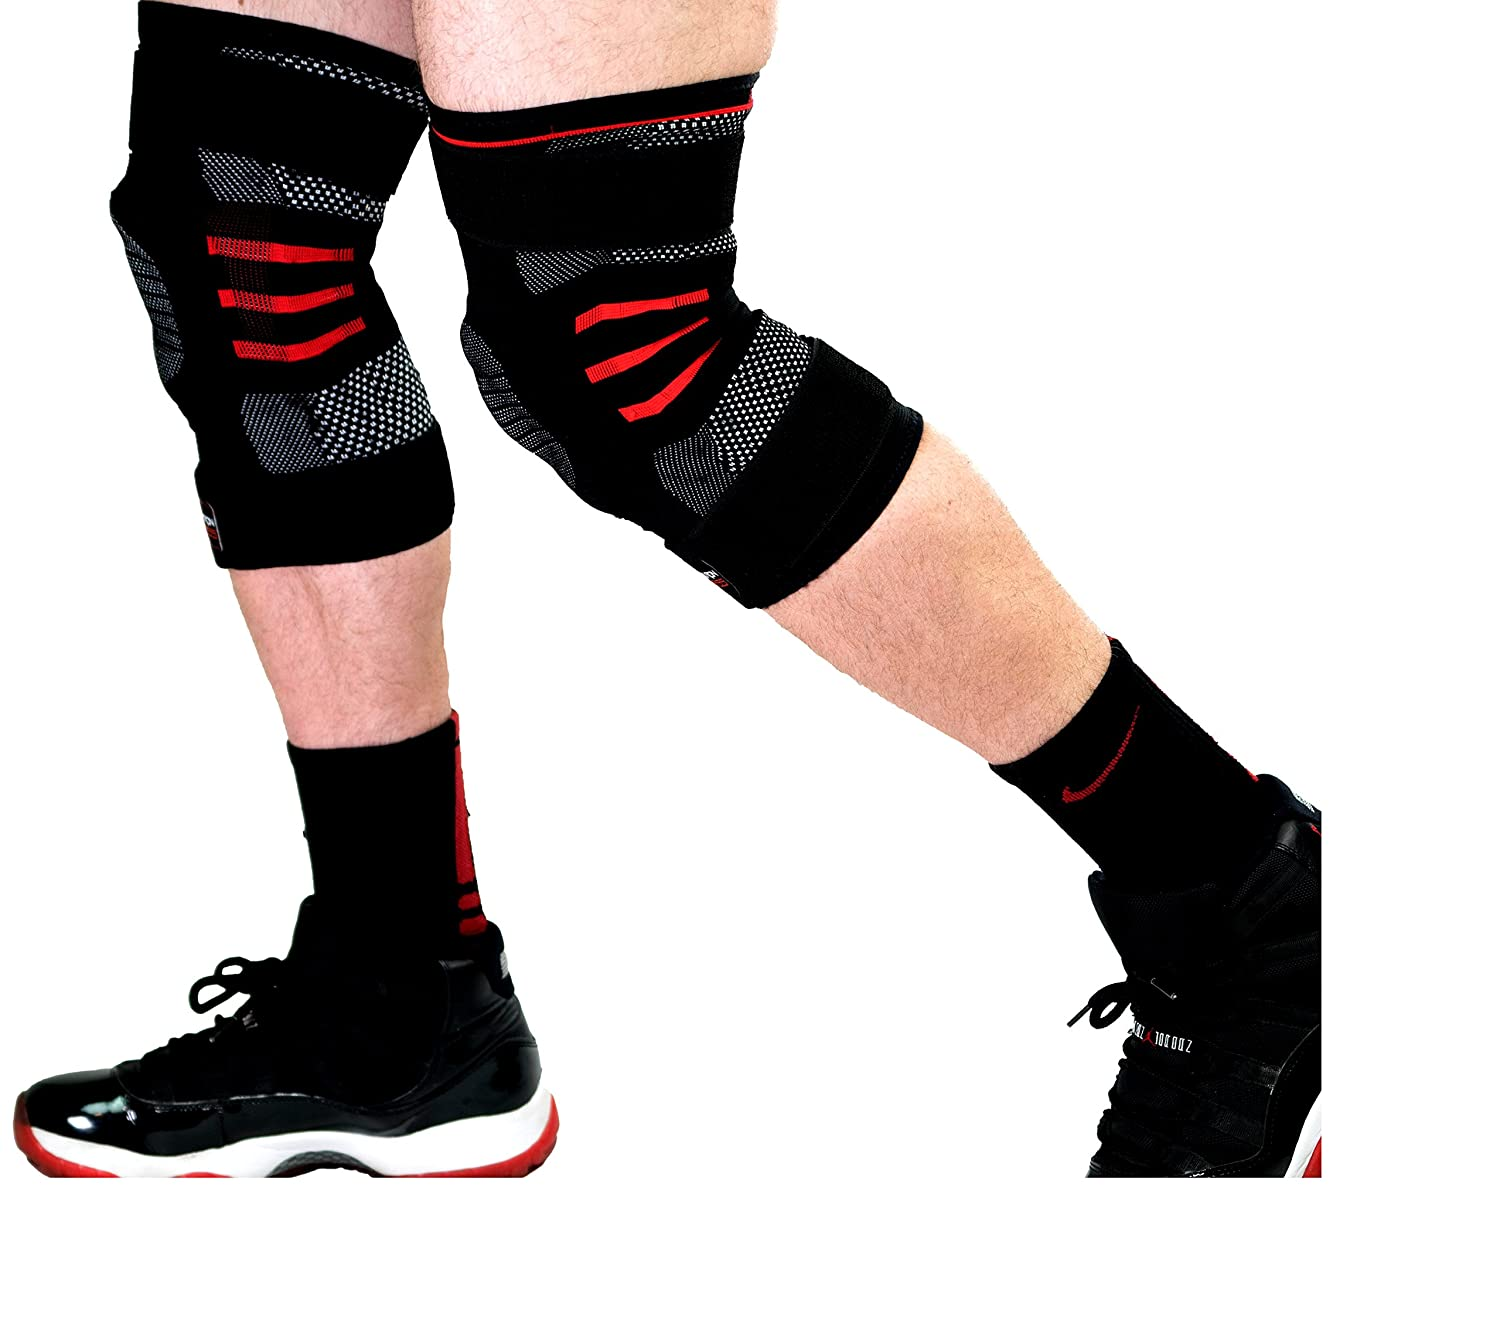 Low Impact Exercise Benefits | Safe & Smart Fitness - Dark Iron Fitness Knee Sleeves